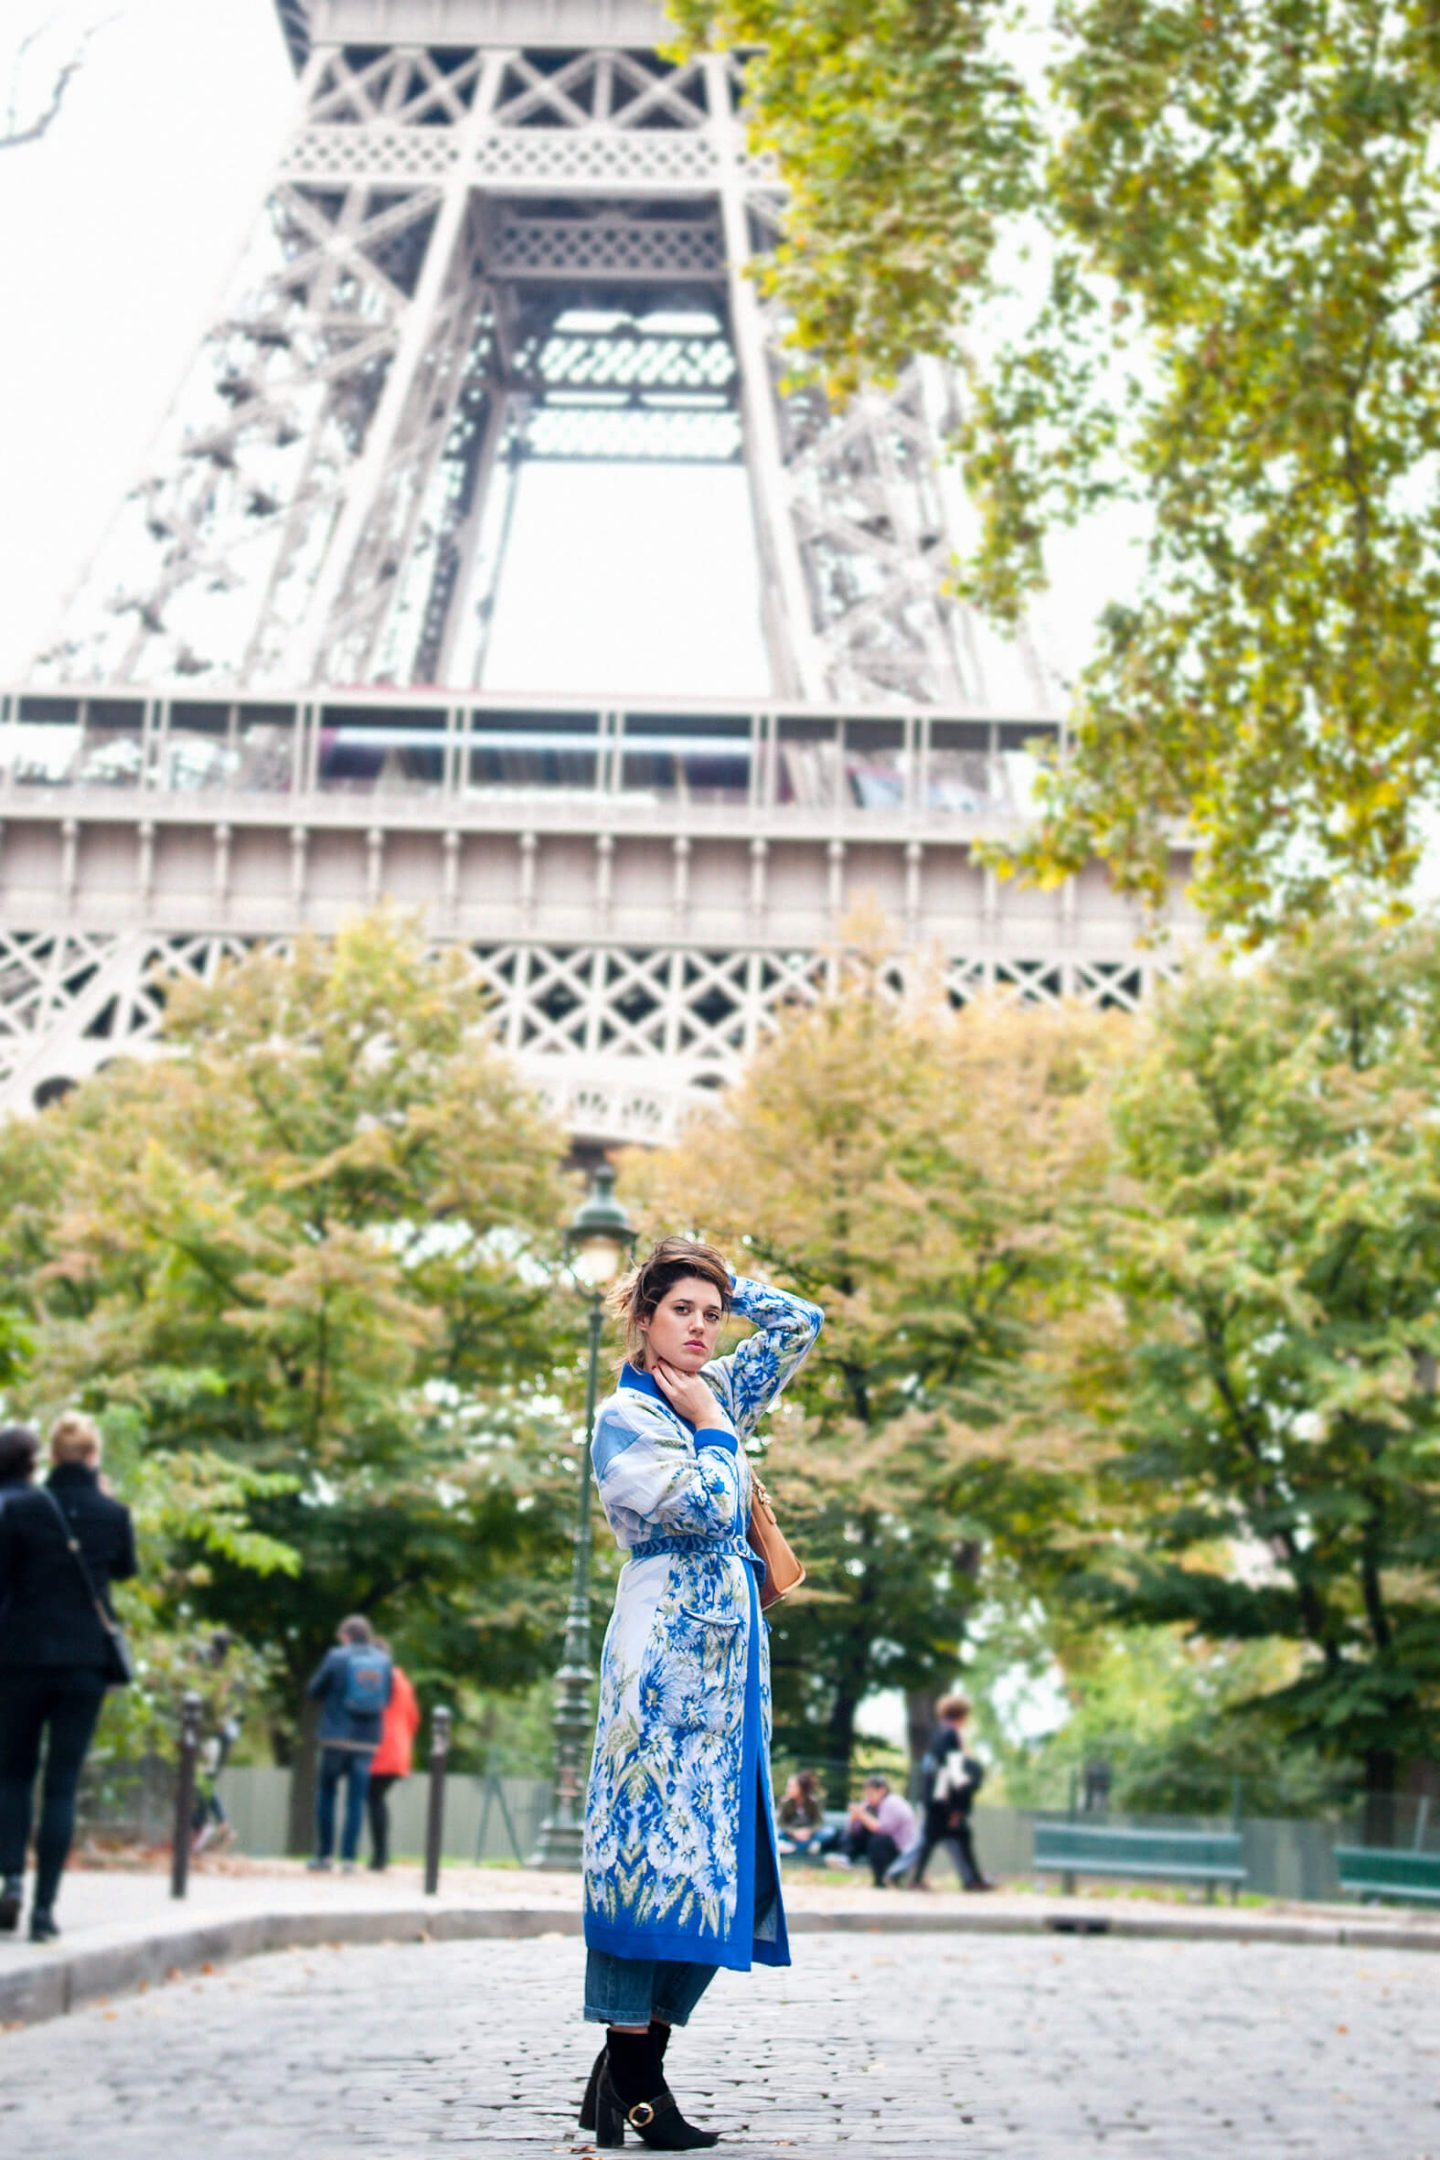 Look Cardigan bleu fleurs Paris tour Eiffel L'atelier d'al blog mode lifestyle DIY